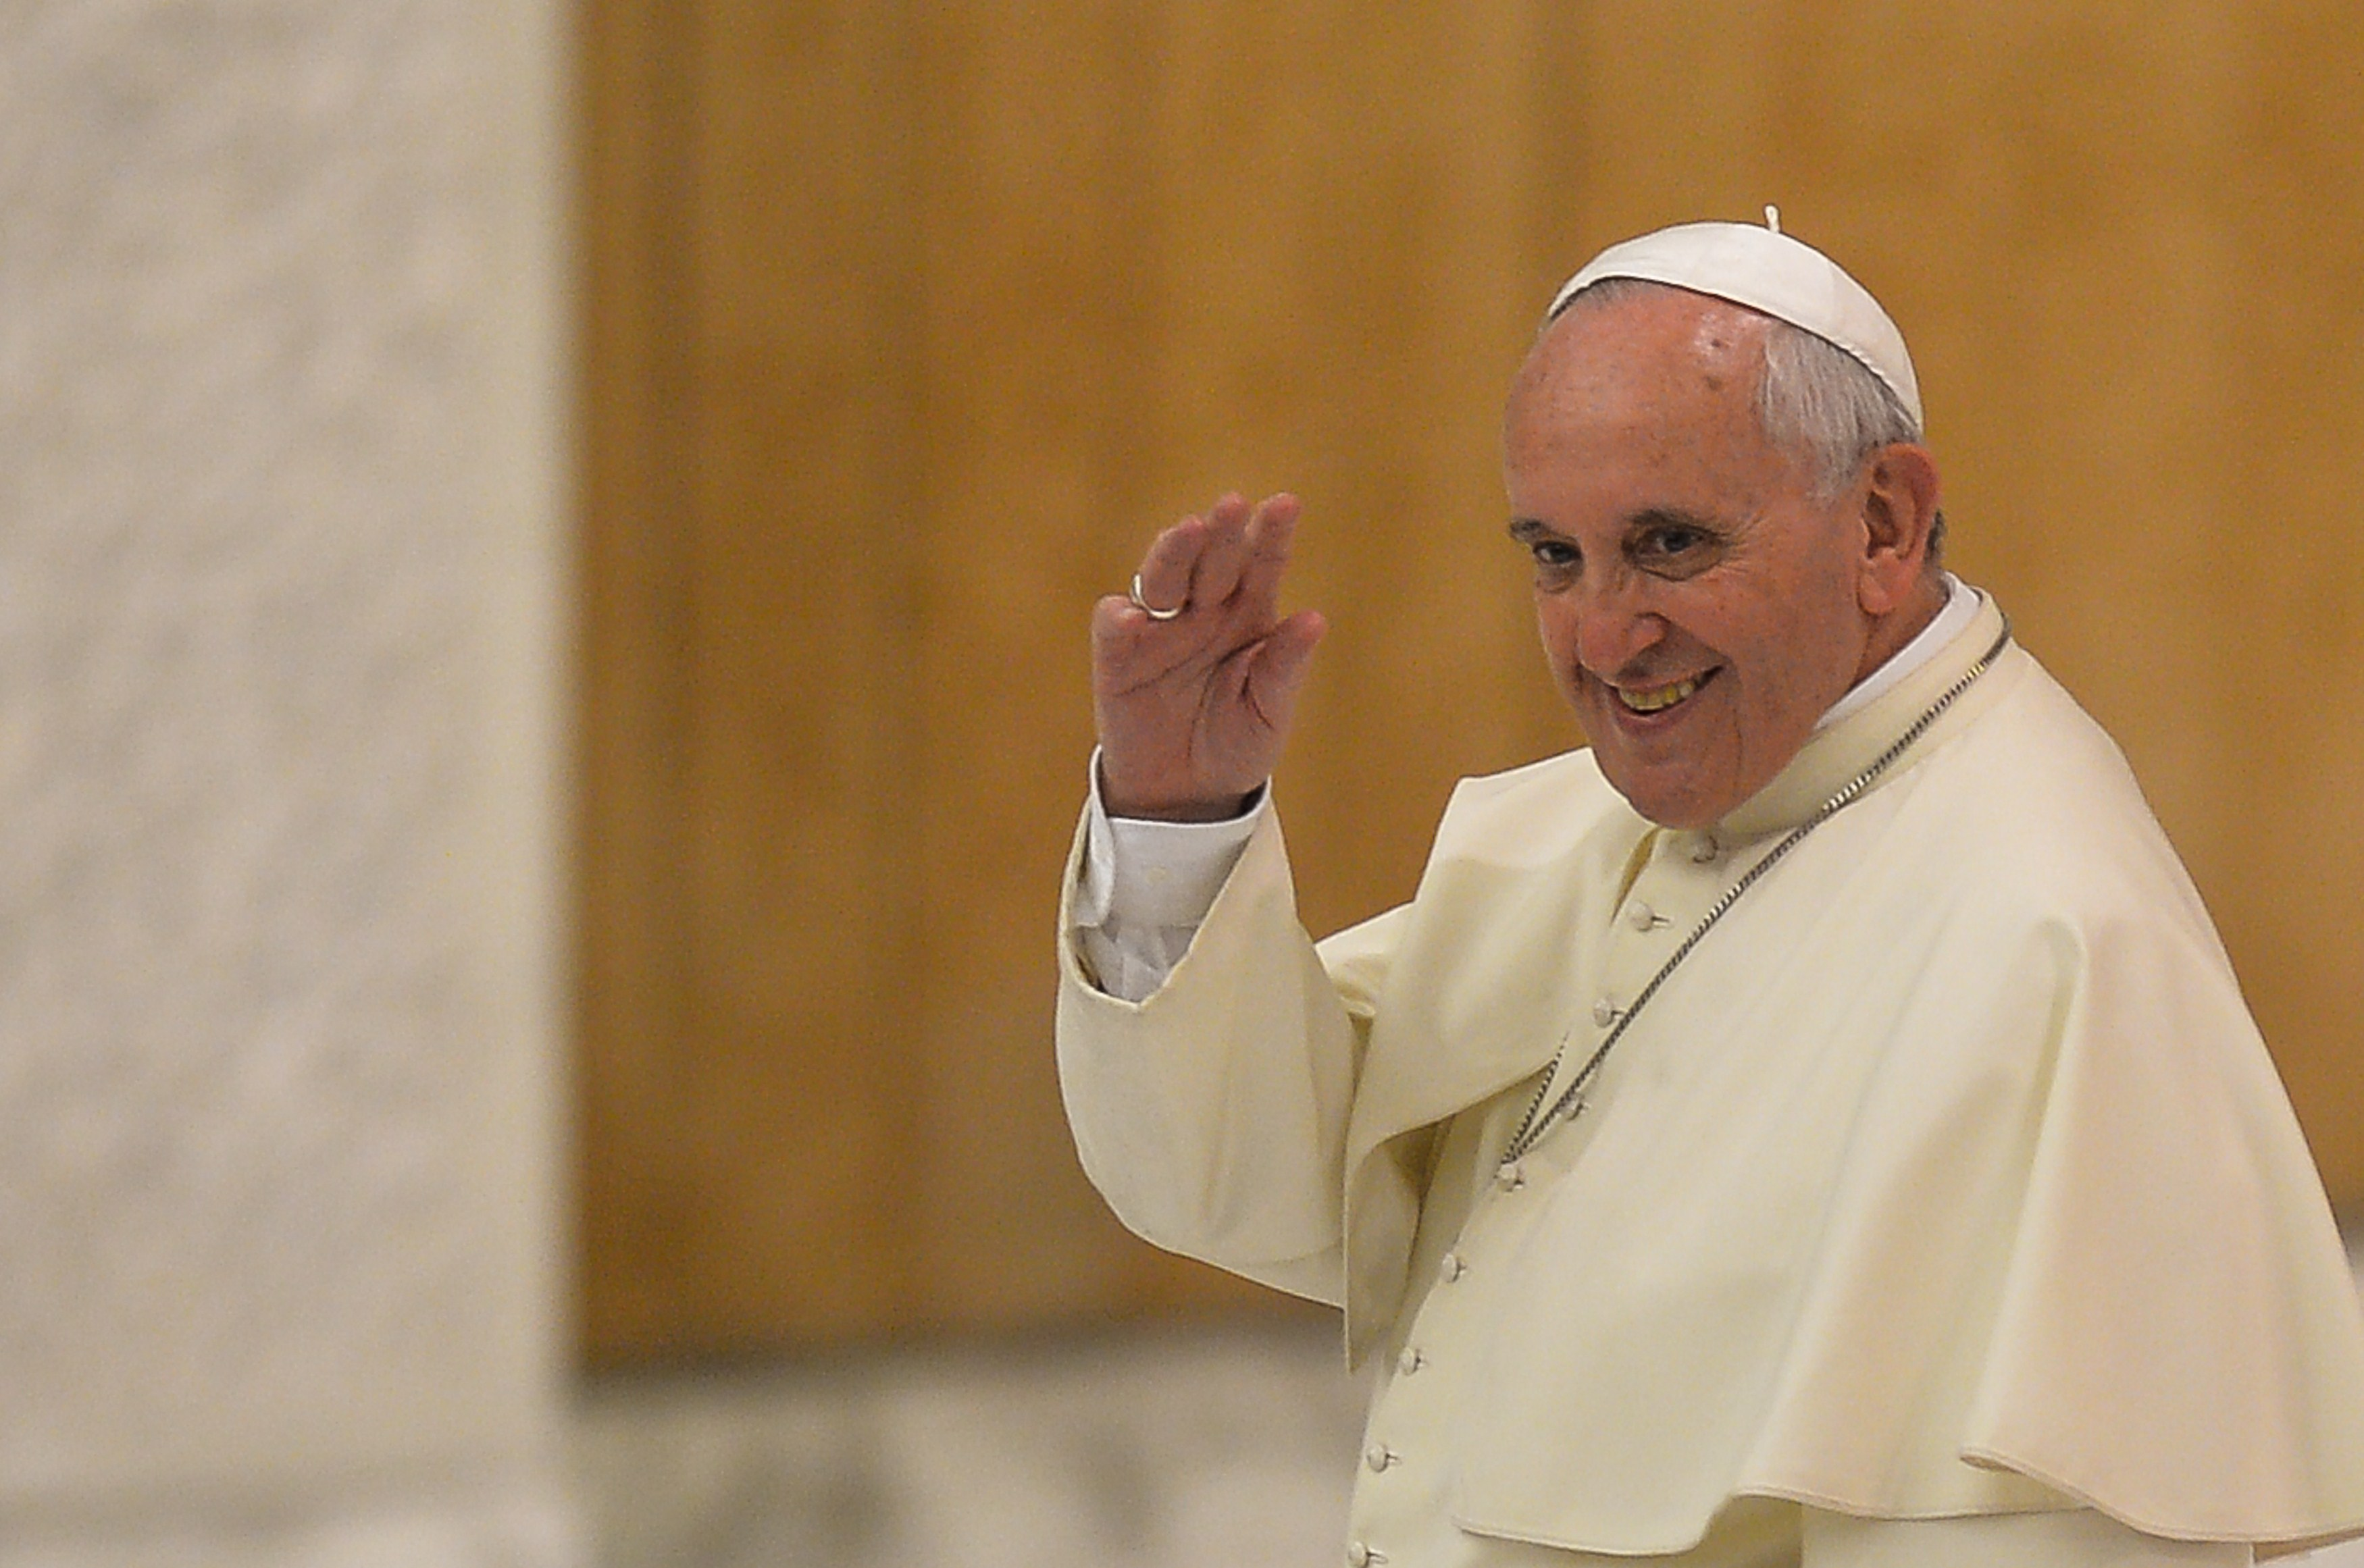 Pope Francis gives a speech during the International Meeting of Pastoral Care project  Evangelii Gaudium  at the Vatican, on September 19, 2014.